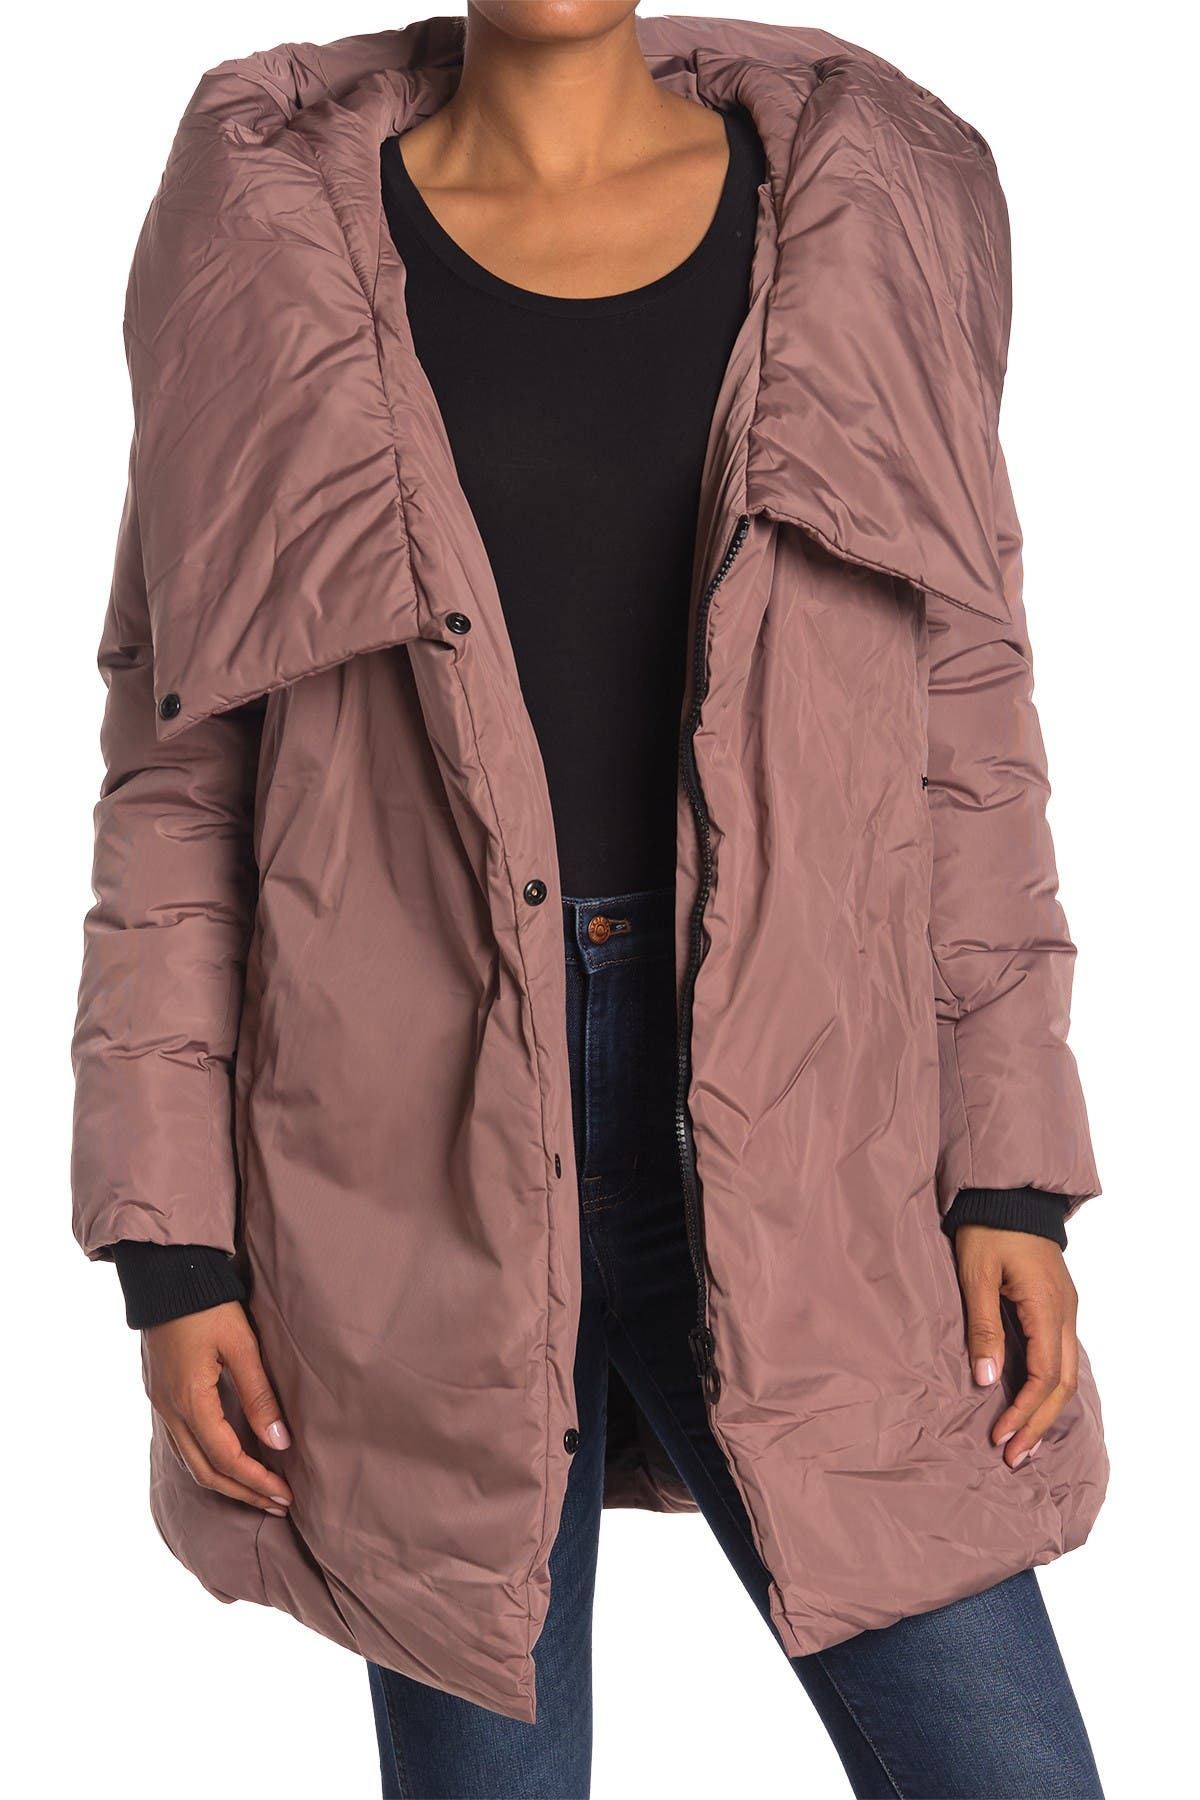 Image of NOIZE Venice Hooded Belted Puffer Parka